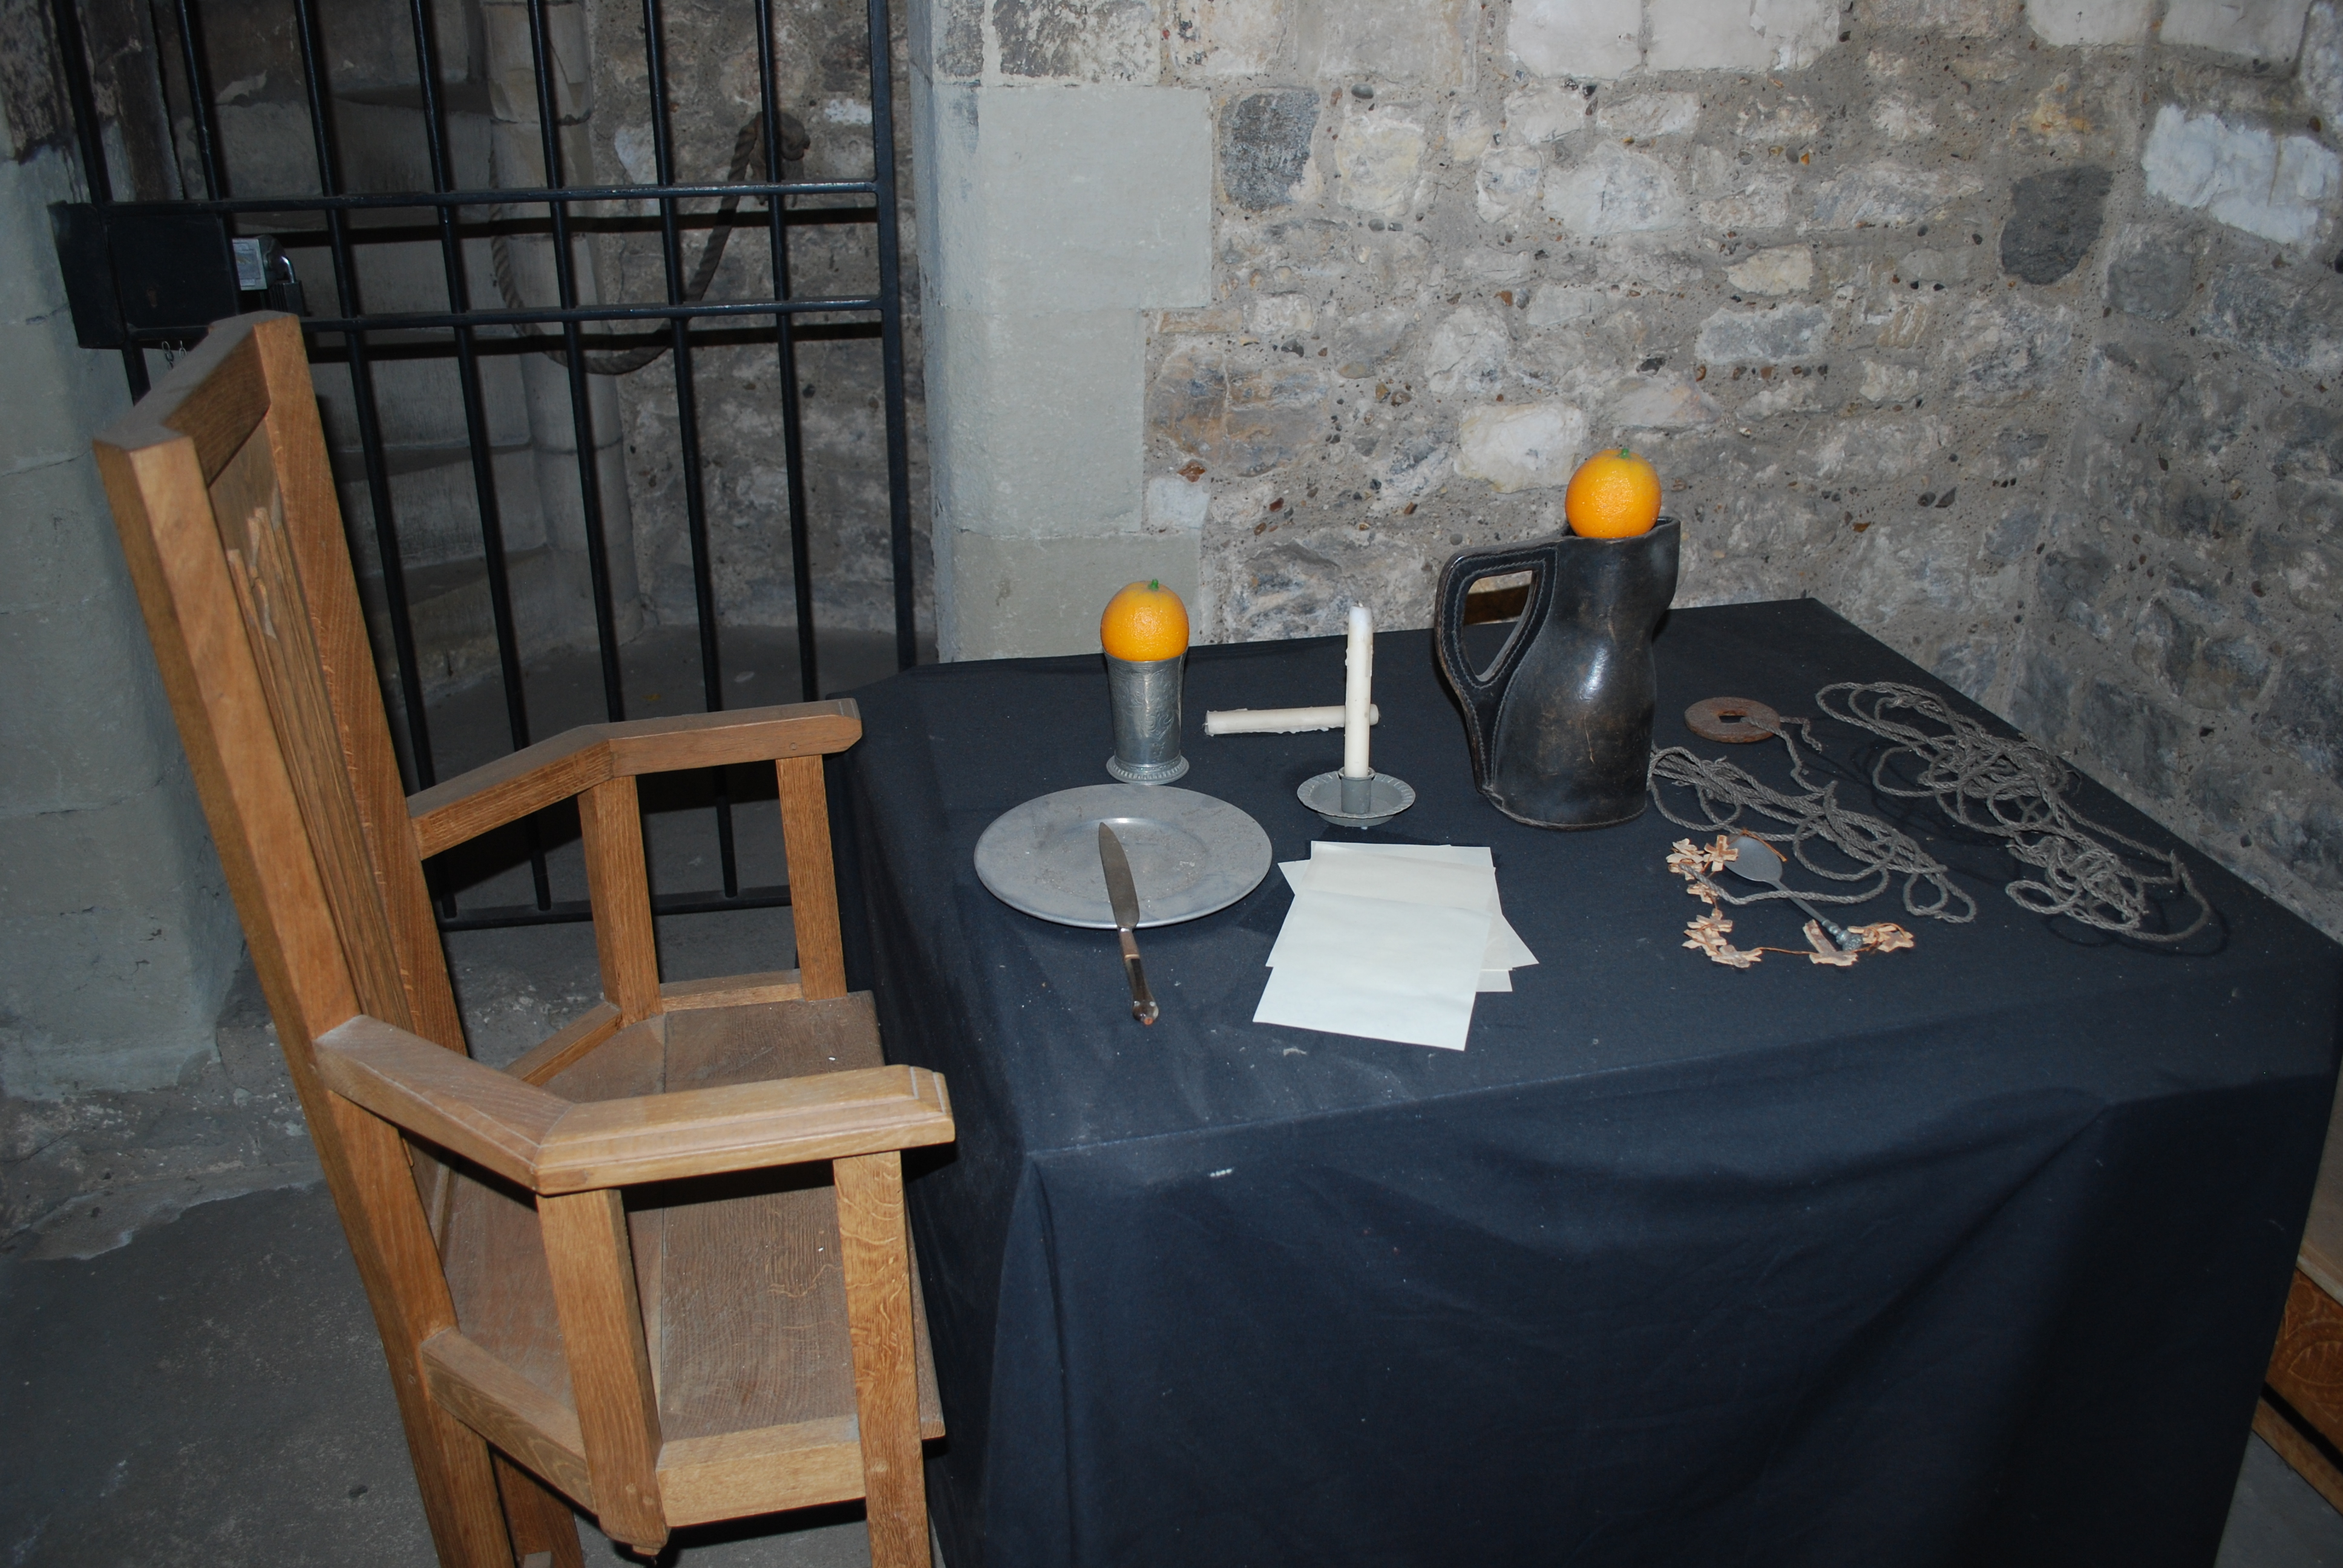 A photograph of a recreation within a cell: There is a small table with a navy table cloth and a wooden chair. On the table there is a plate, knife, 2 oranges, 2 candle sticks and a water jug.